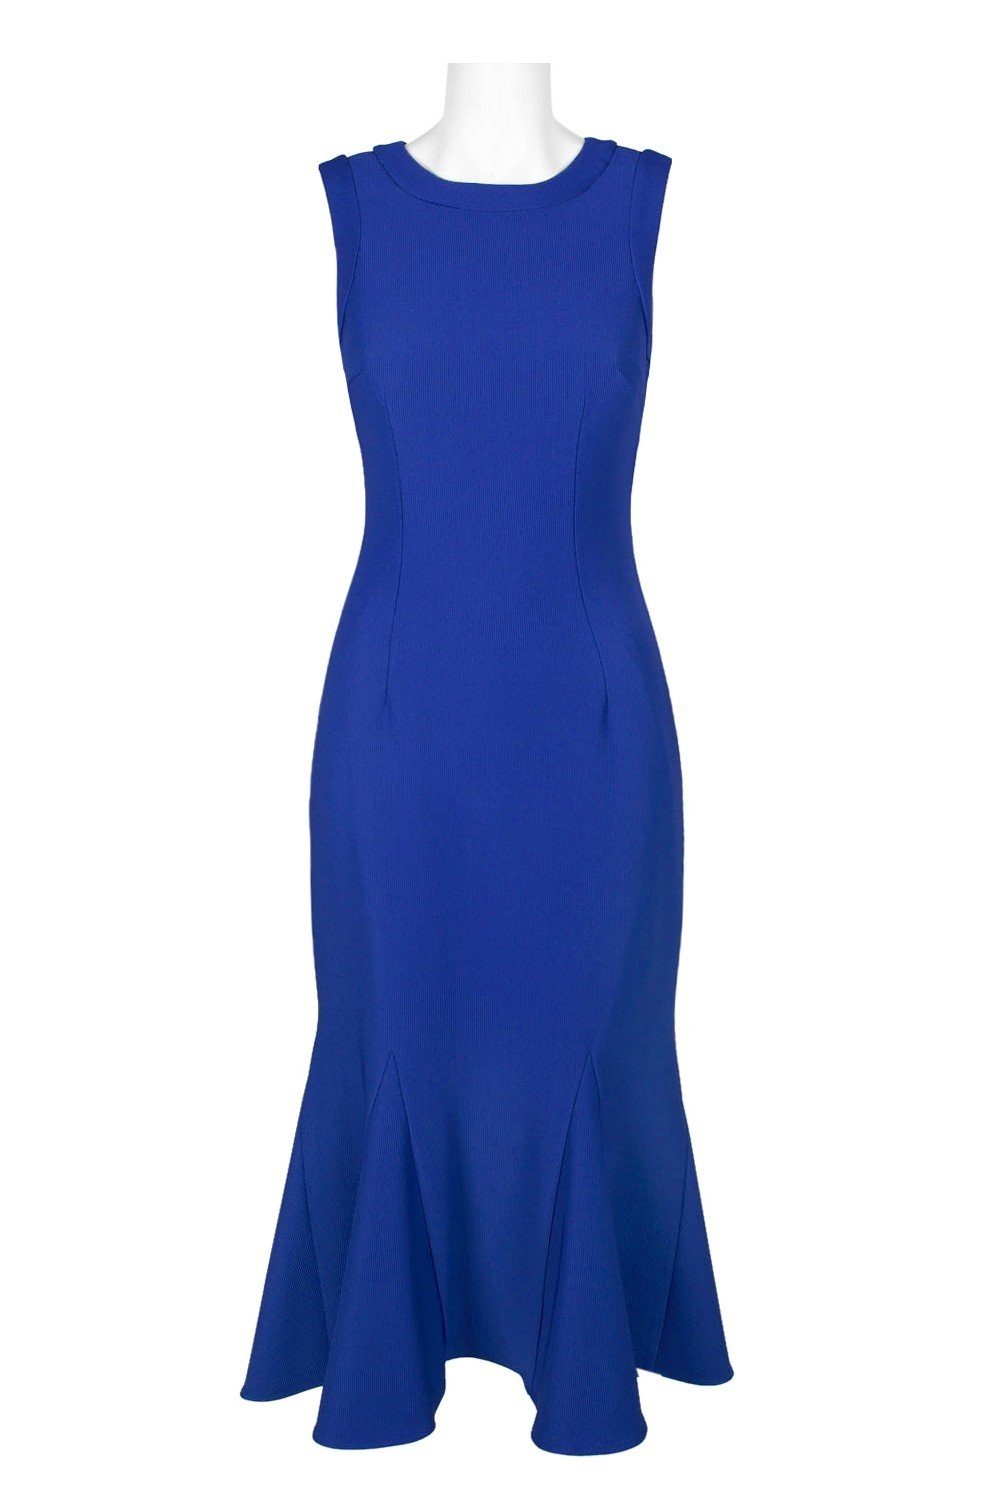 Adrianna Papell - AP1D102729 Sleeveless Jewel Neck Trumpet Dress In Blue